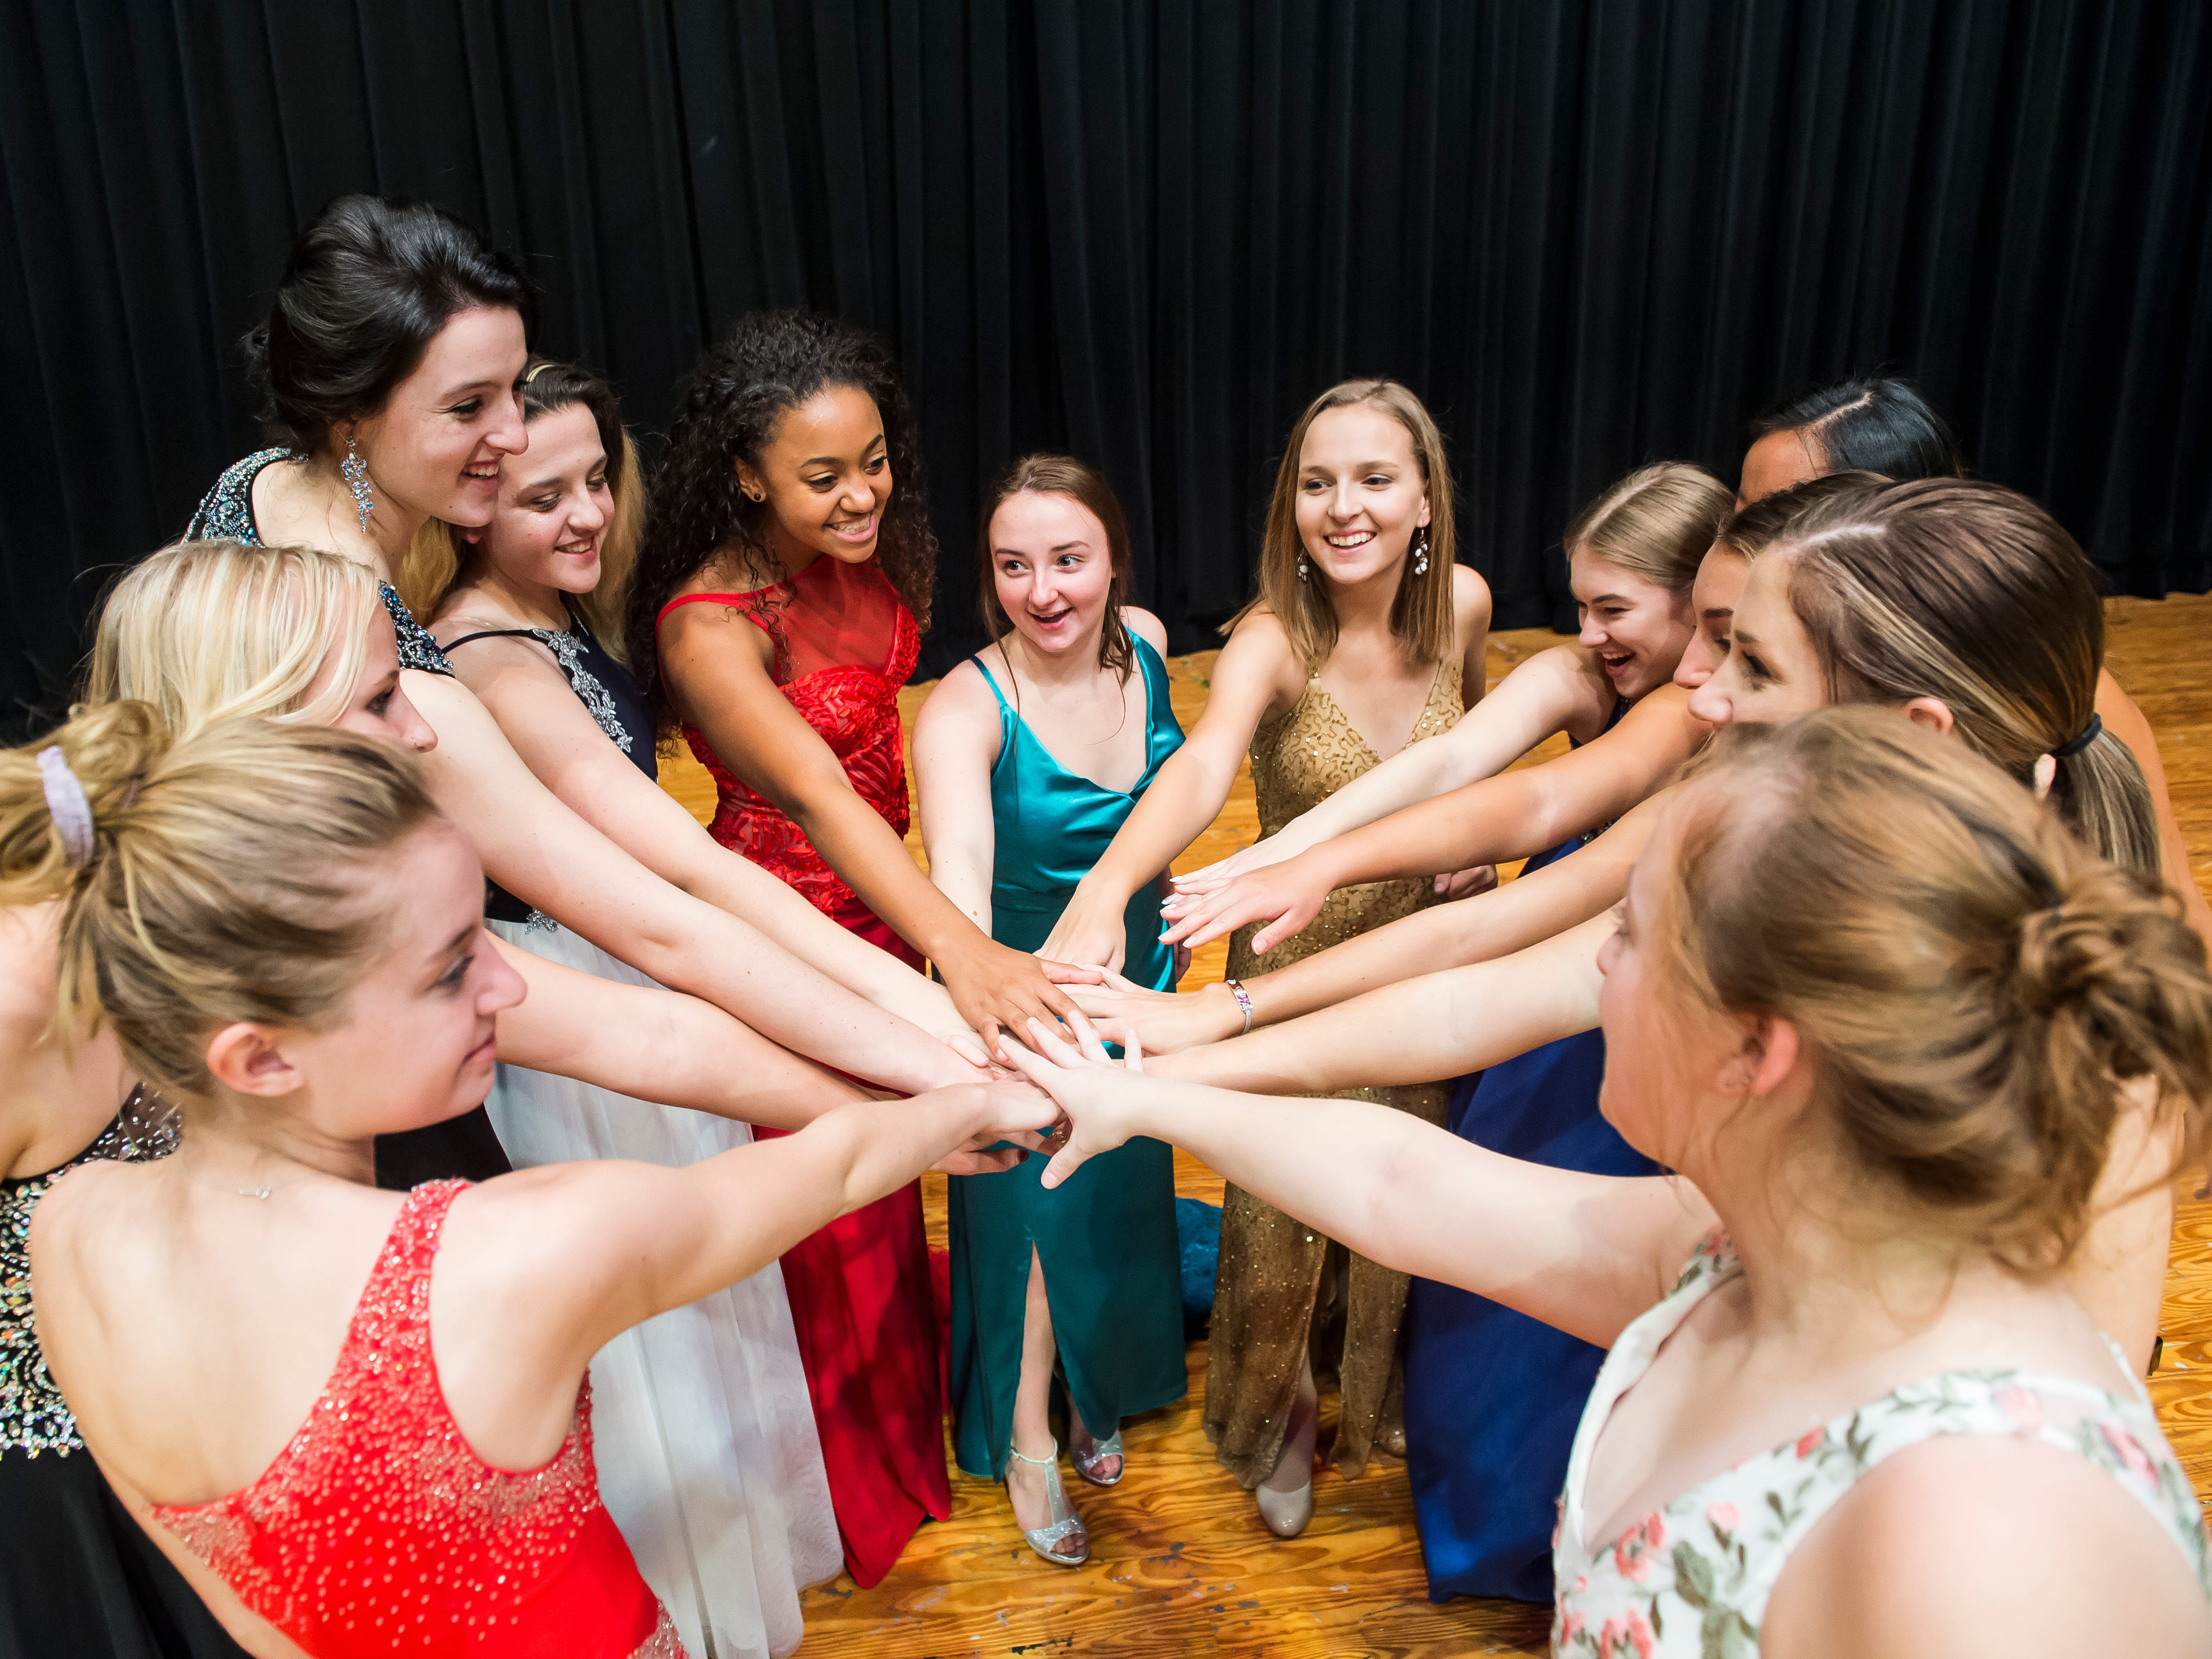 The 12 Miss Hanover Area pageant contestant end a rehearsal session with a chant on Oct. 17, 2018. The pageant will be held Monday, October 22, at 7 p.m. at New Oxford High School.